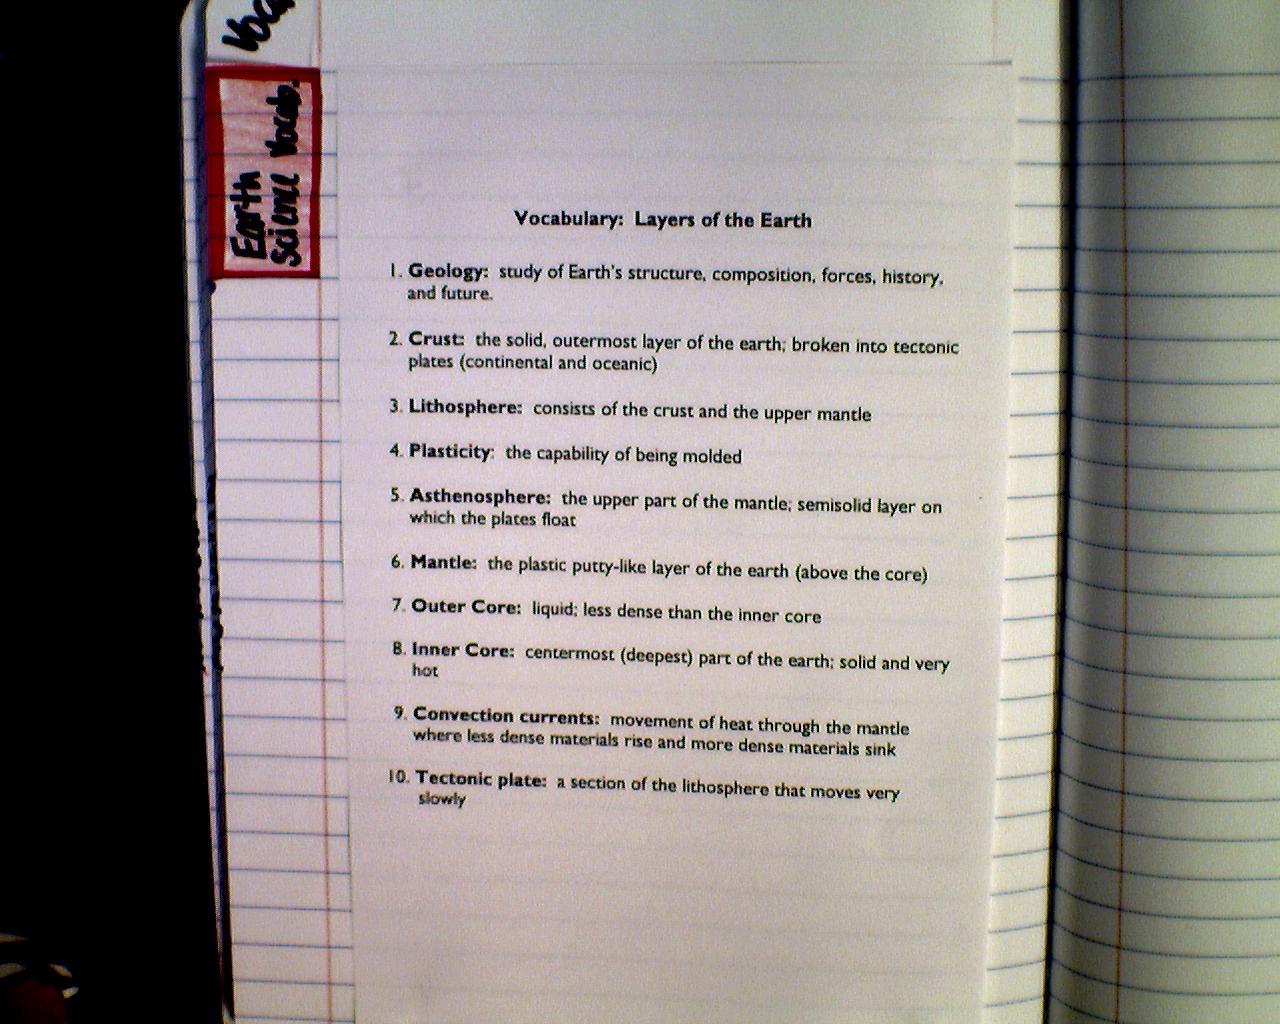 Mrs Dingler S 6th Grade Science Class Layers Of The Earth Vocabulary